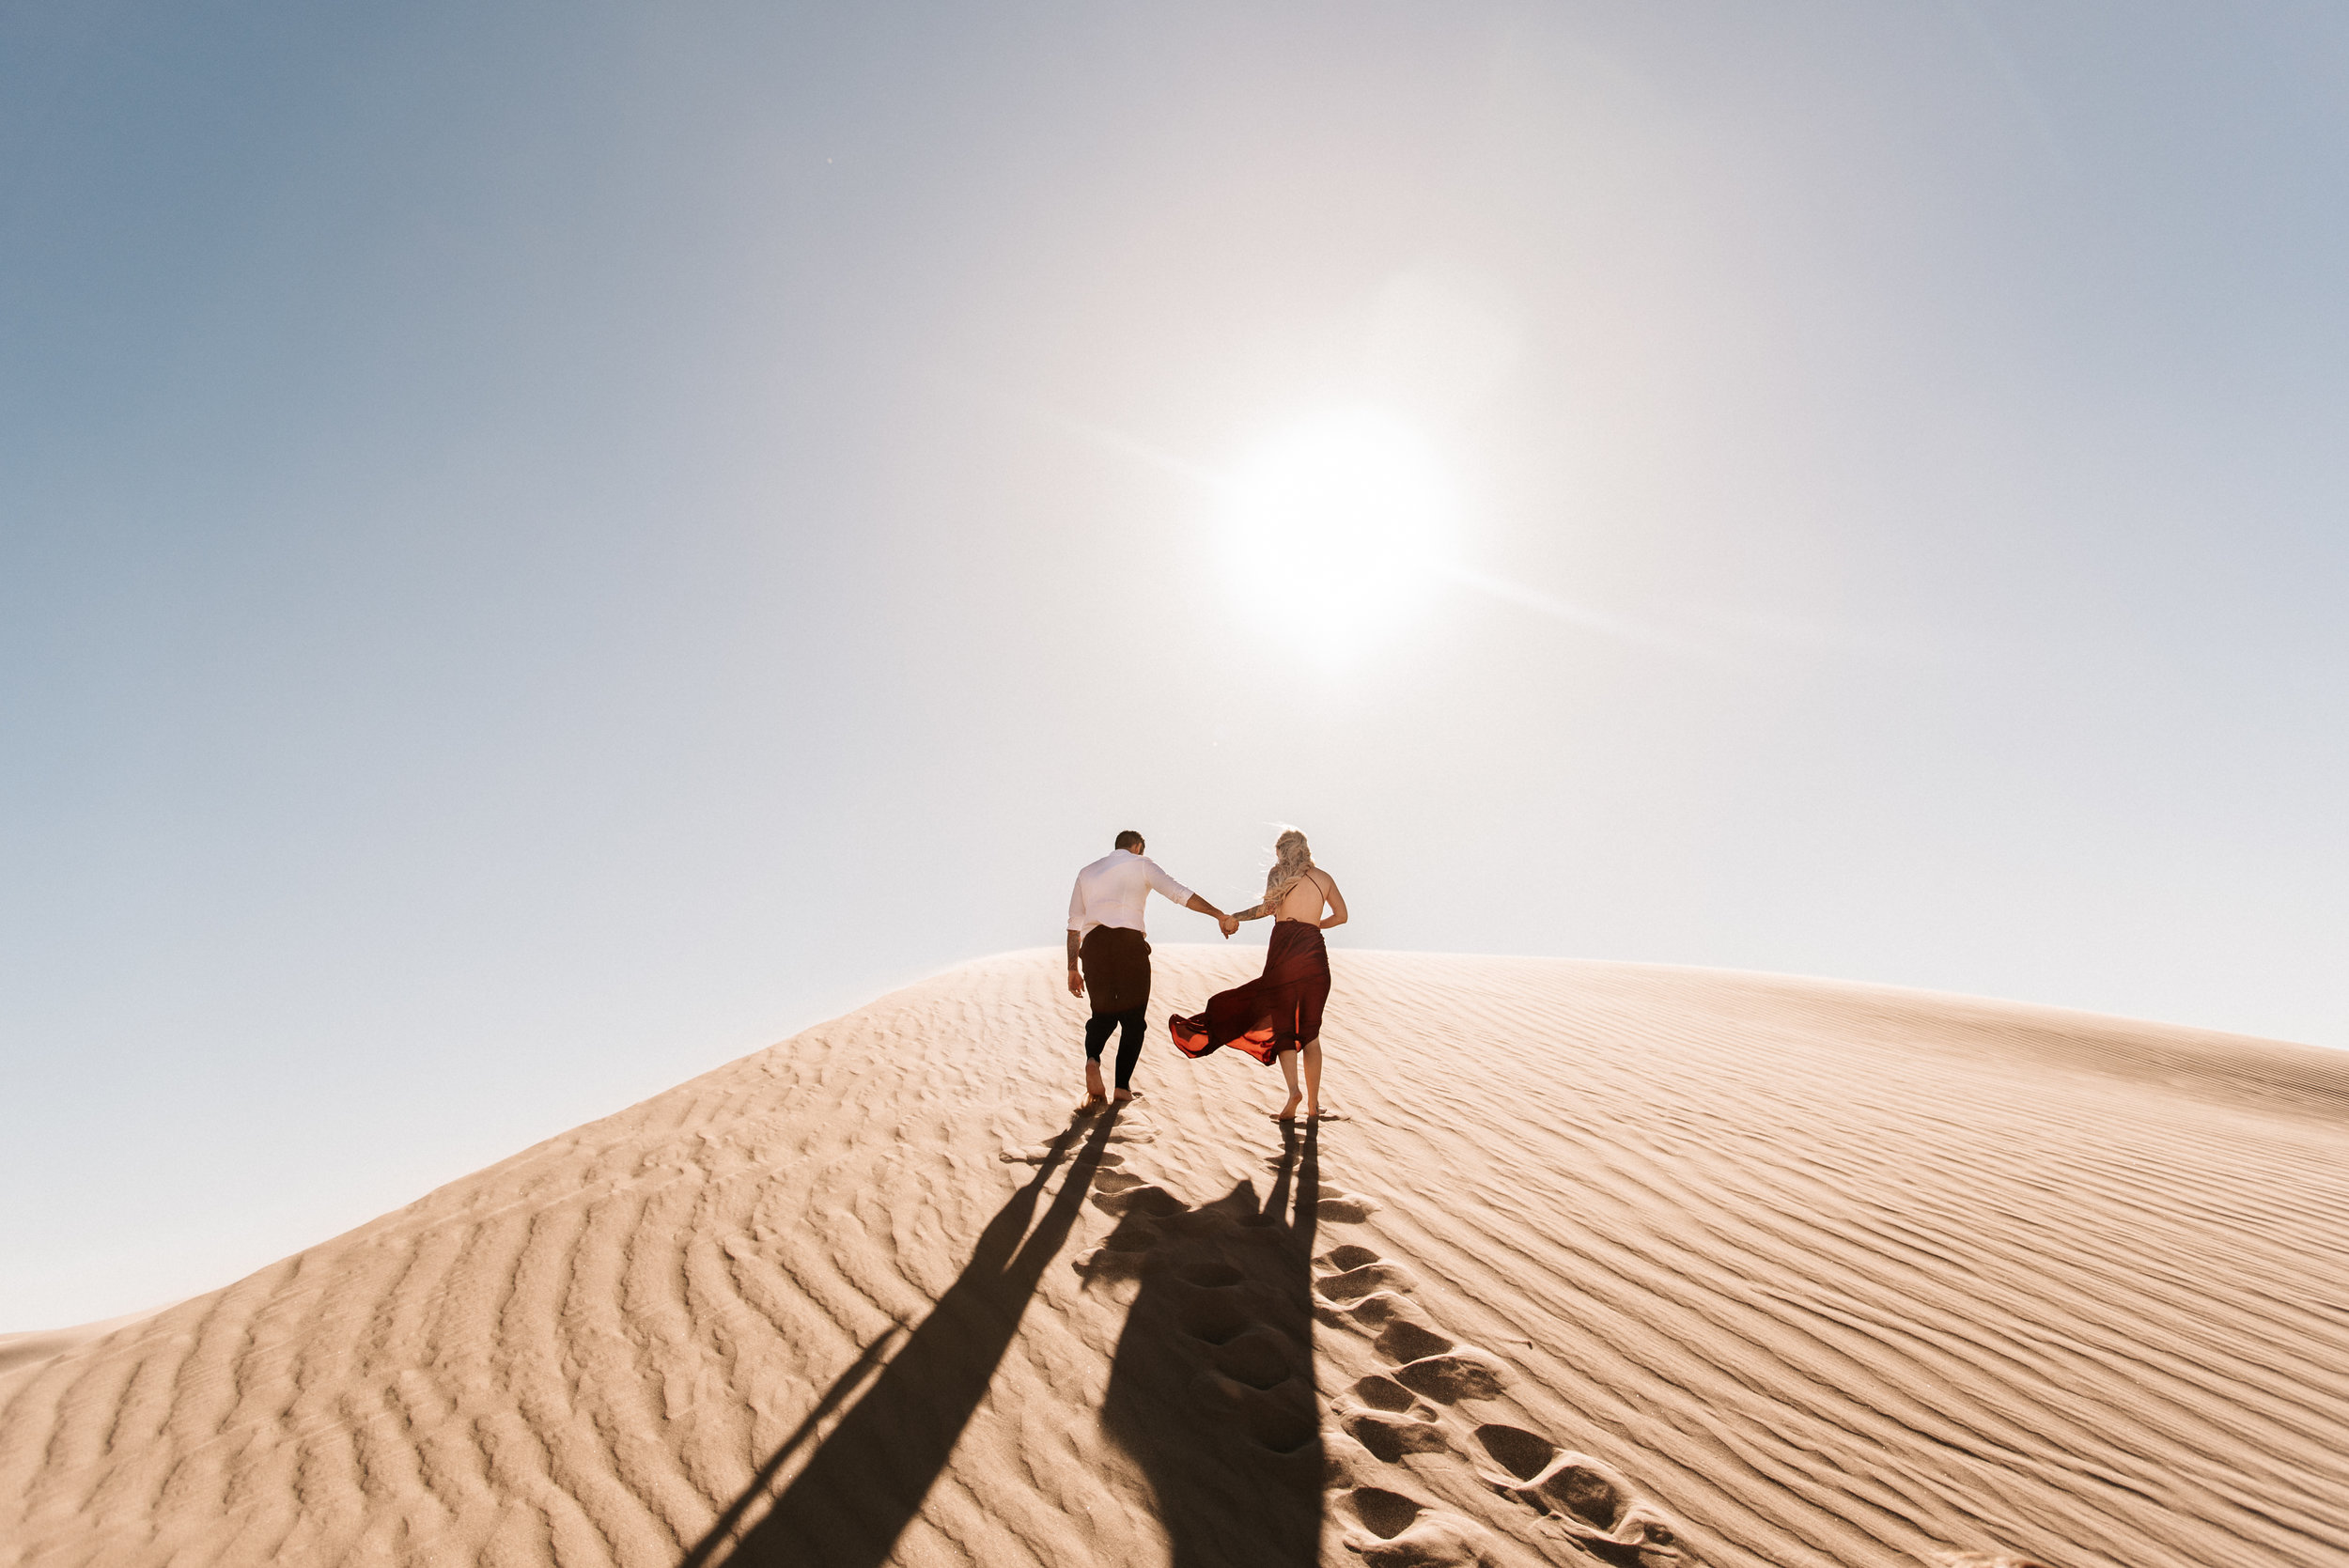 SamErica Studios - Modern San Diego Engagement Photographer - Adventure Engagement Session in Glamis Sand Dunes California-12.jpg